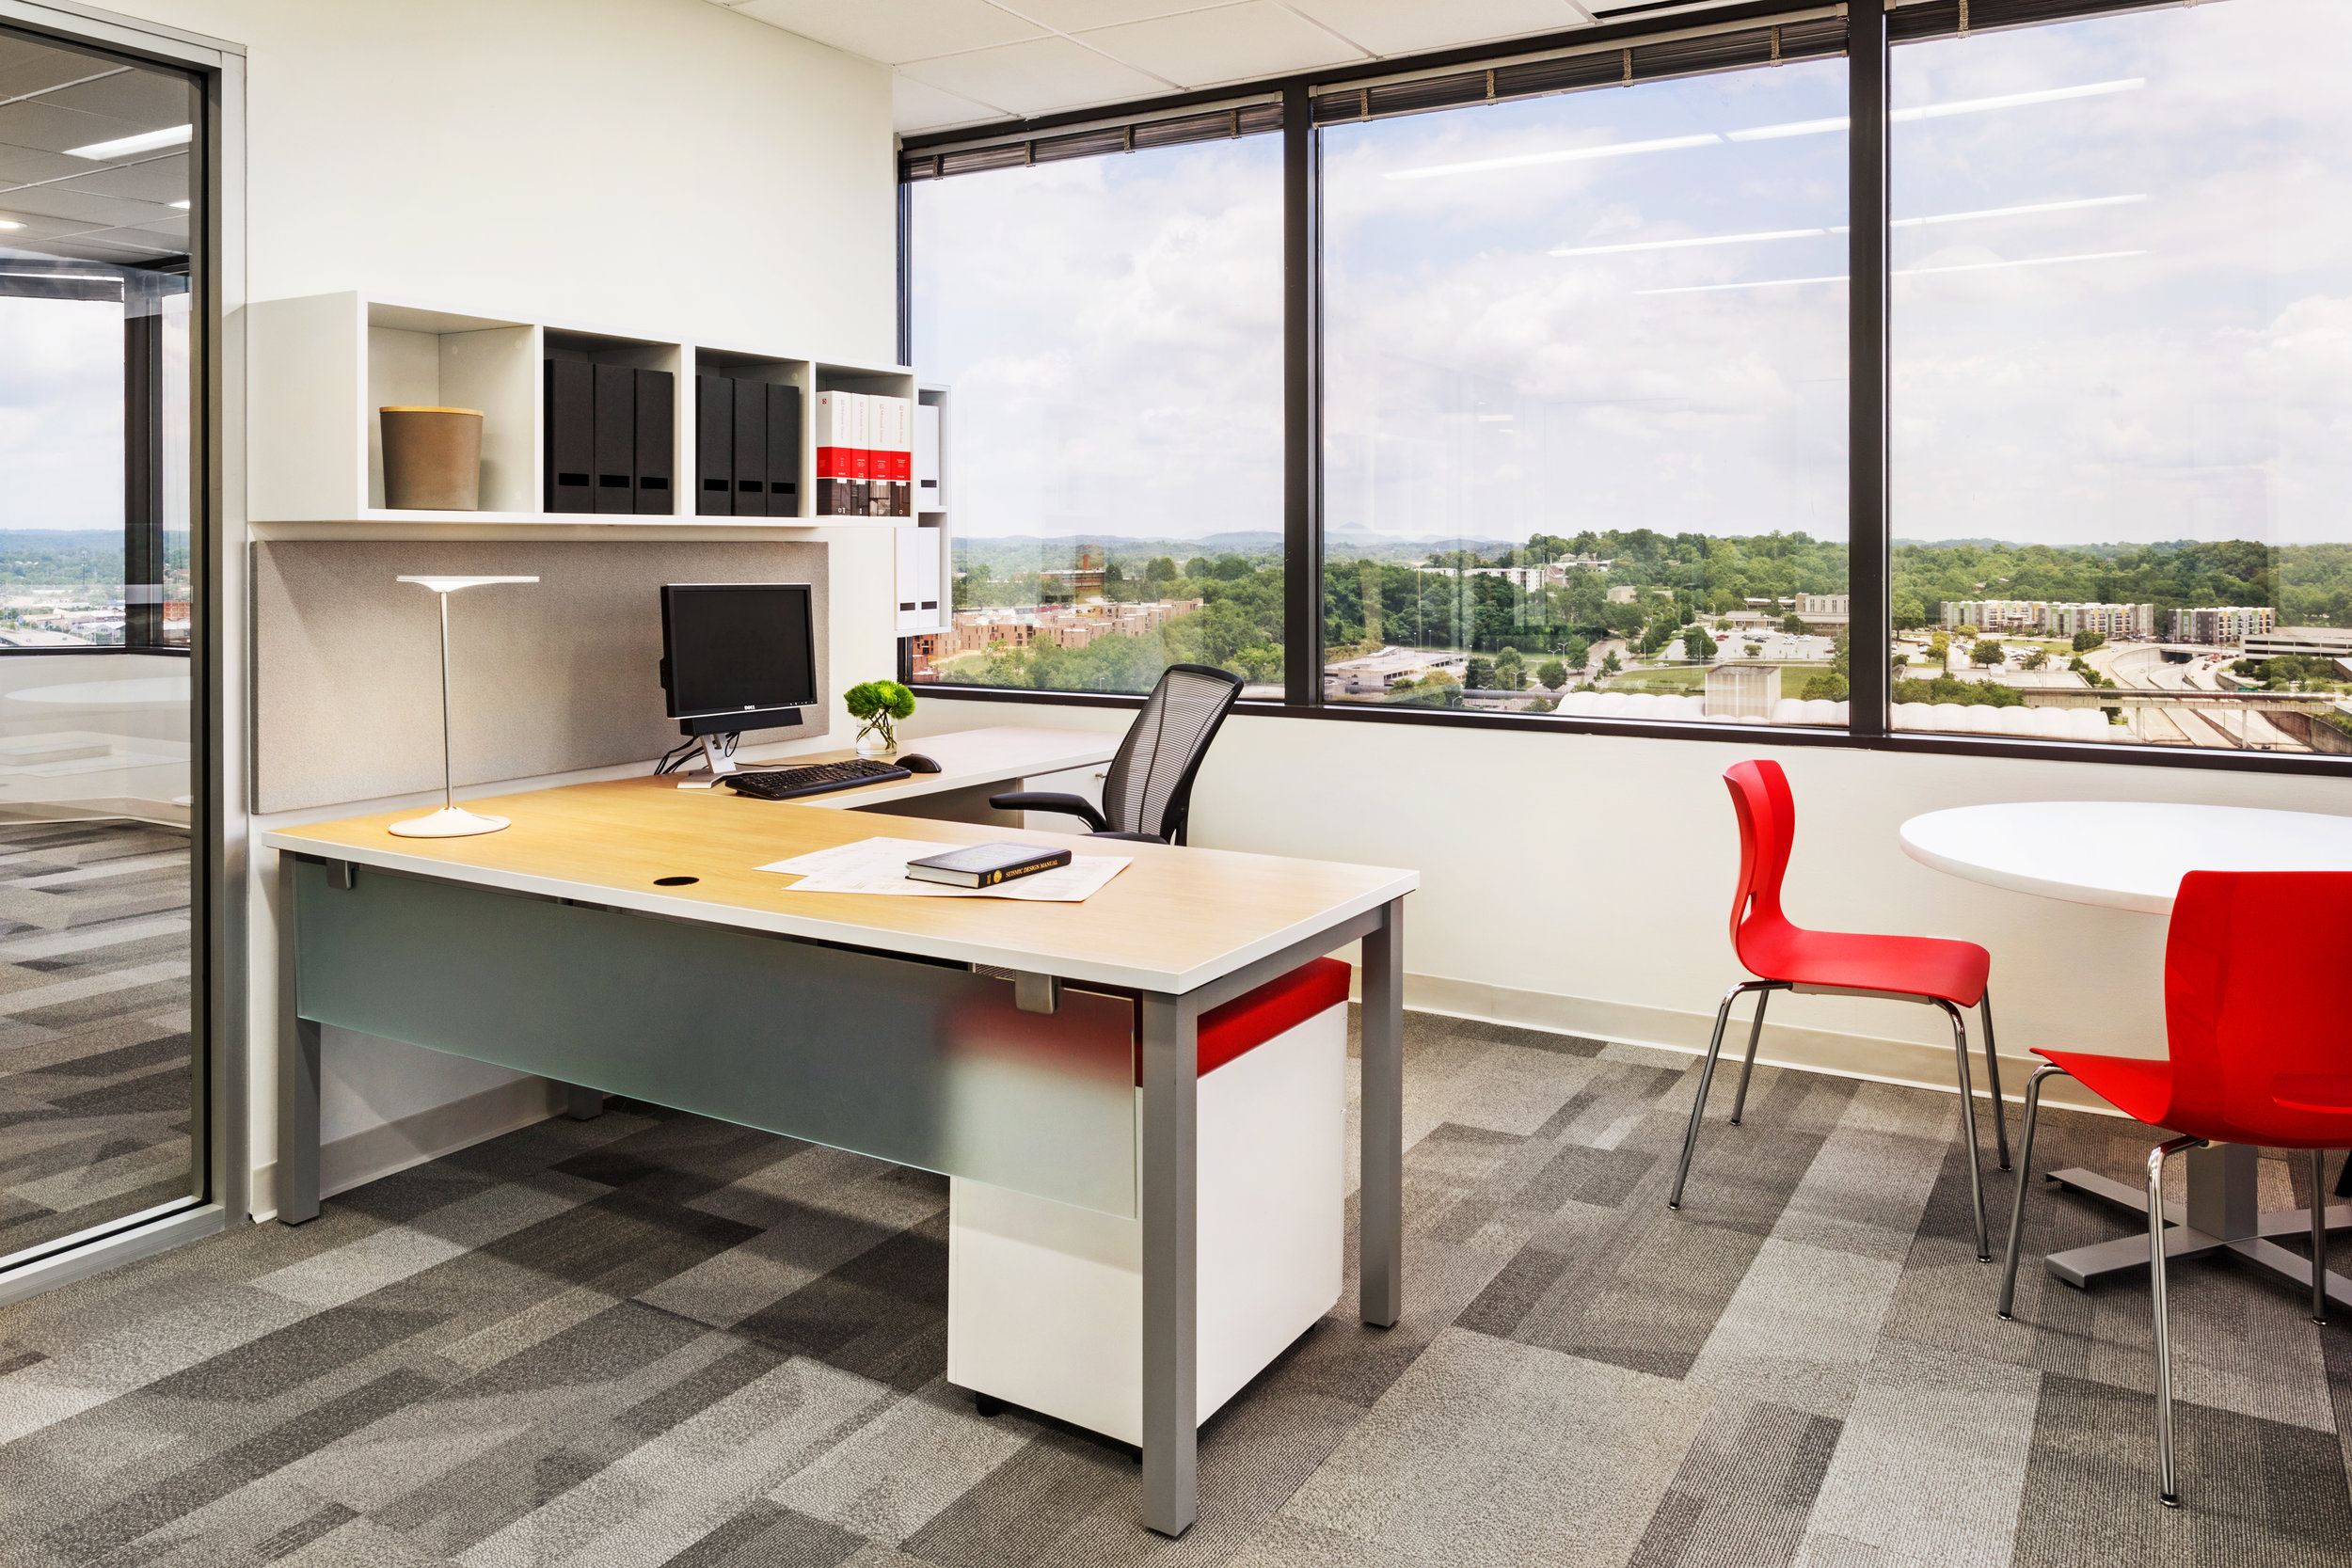 Commercial_Design_Office_Knoxville_Interiors_Chad_Stewart